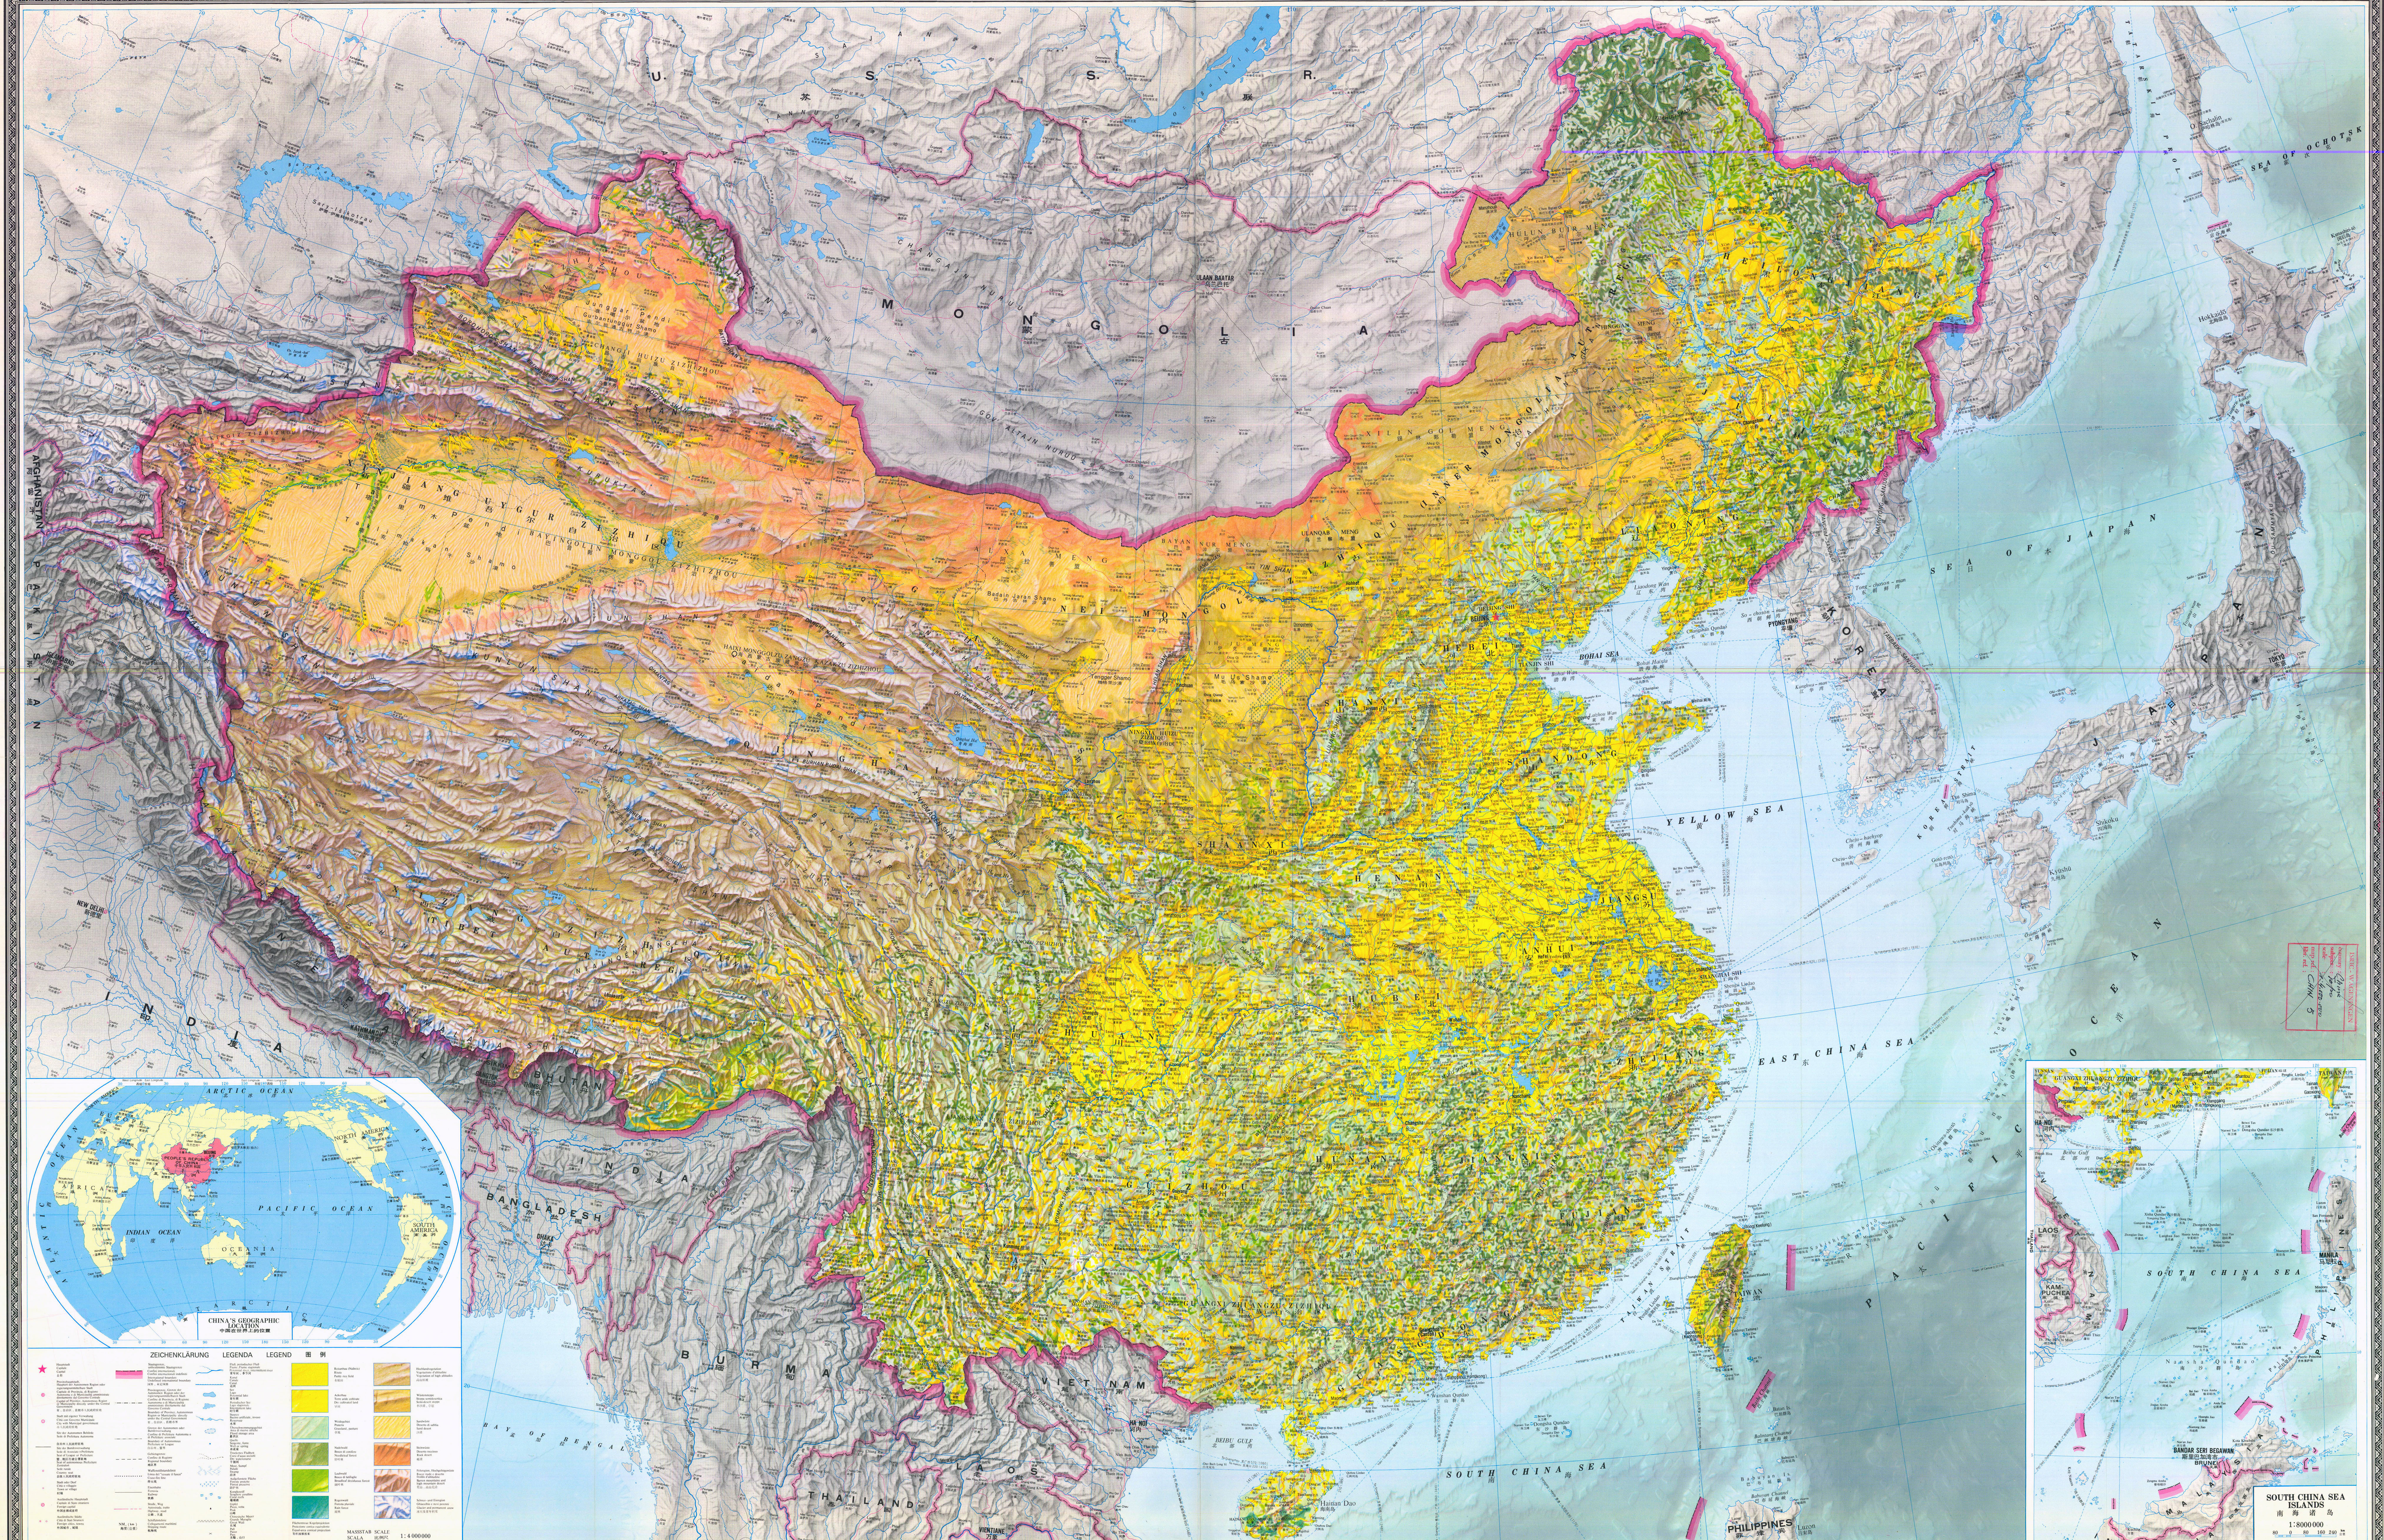 Venezuela Topographic Map.Large Scale Detailed Topographic Map Of China 1984 With All Cities